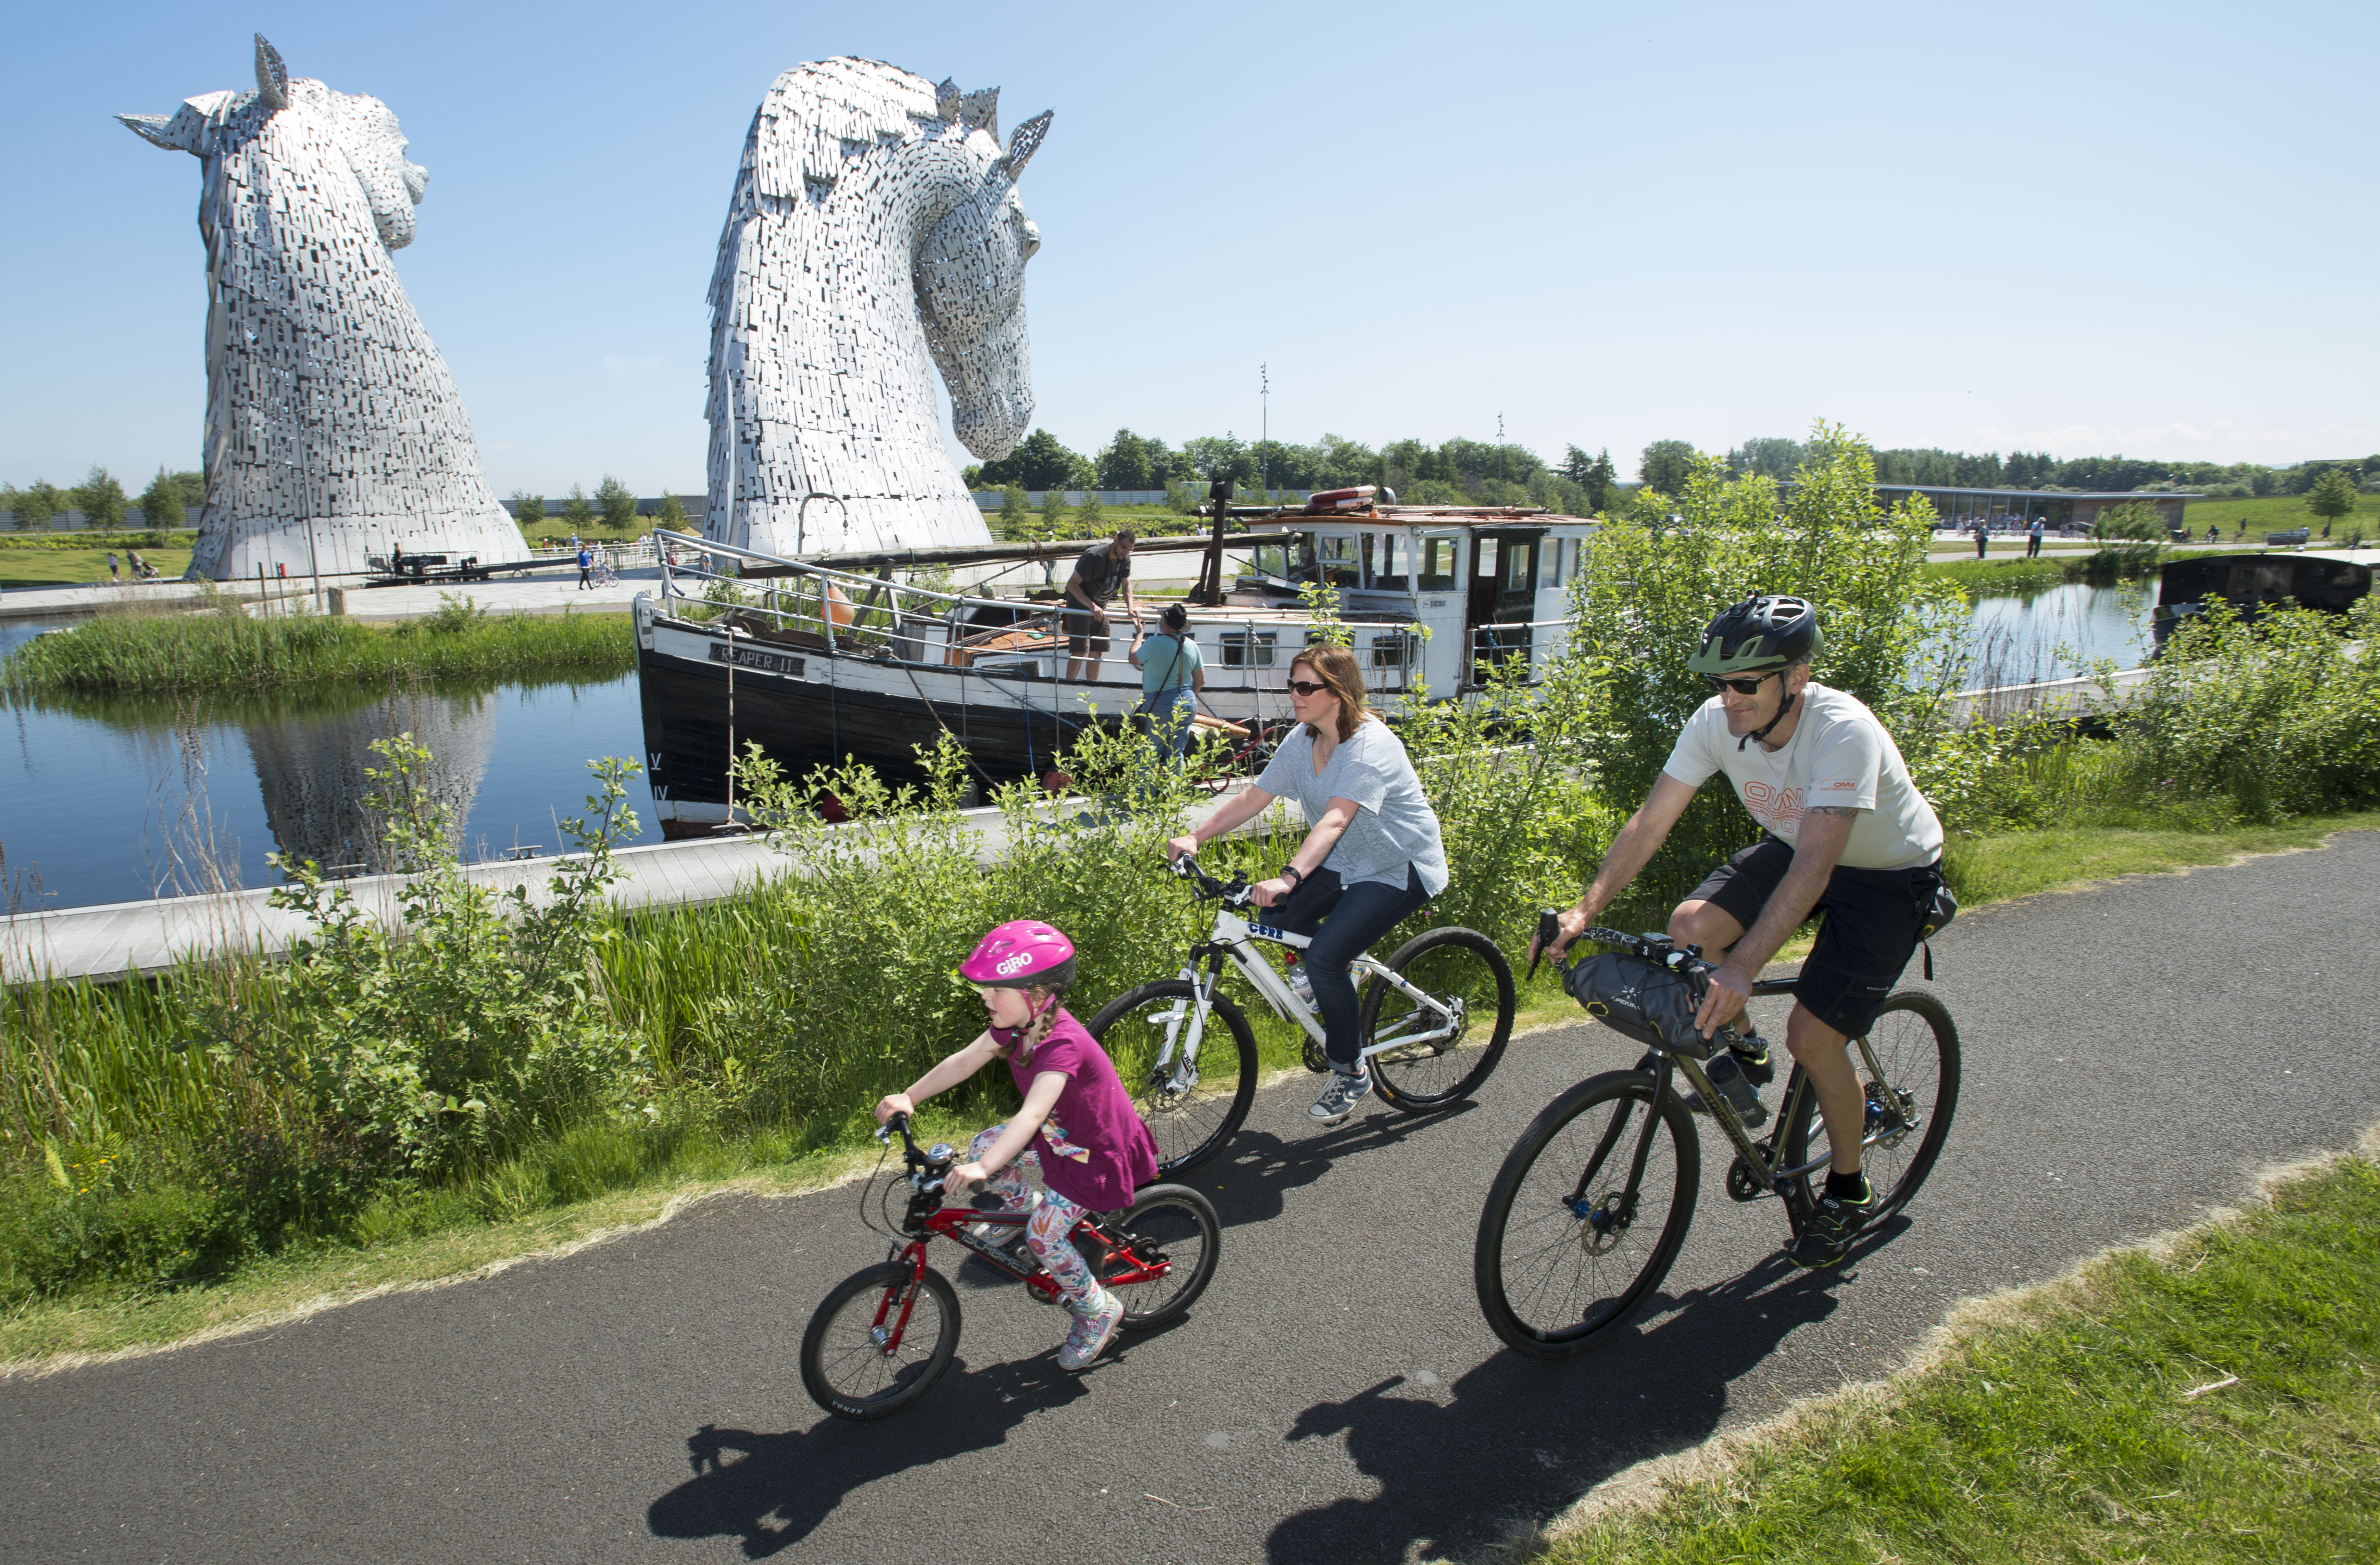 Families riding near the Falkirk Wheel